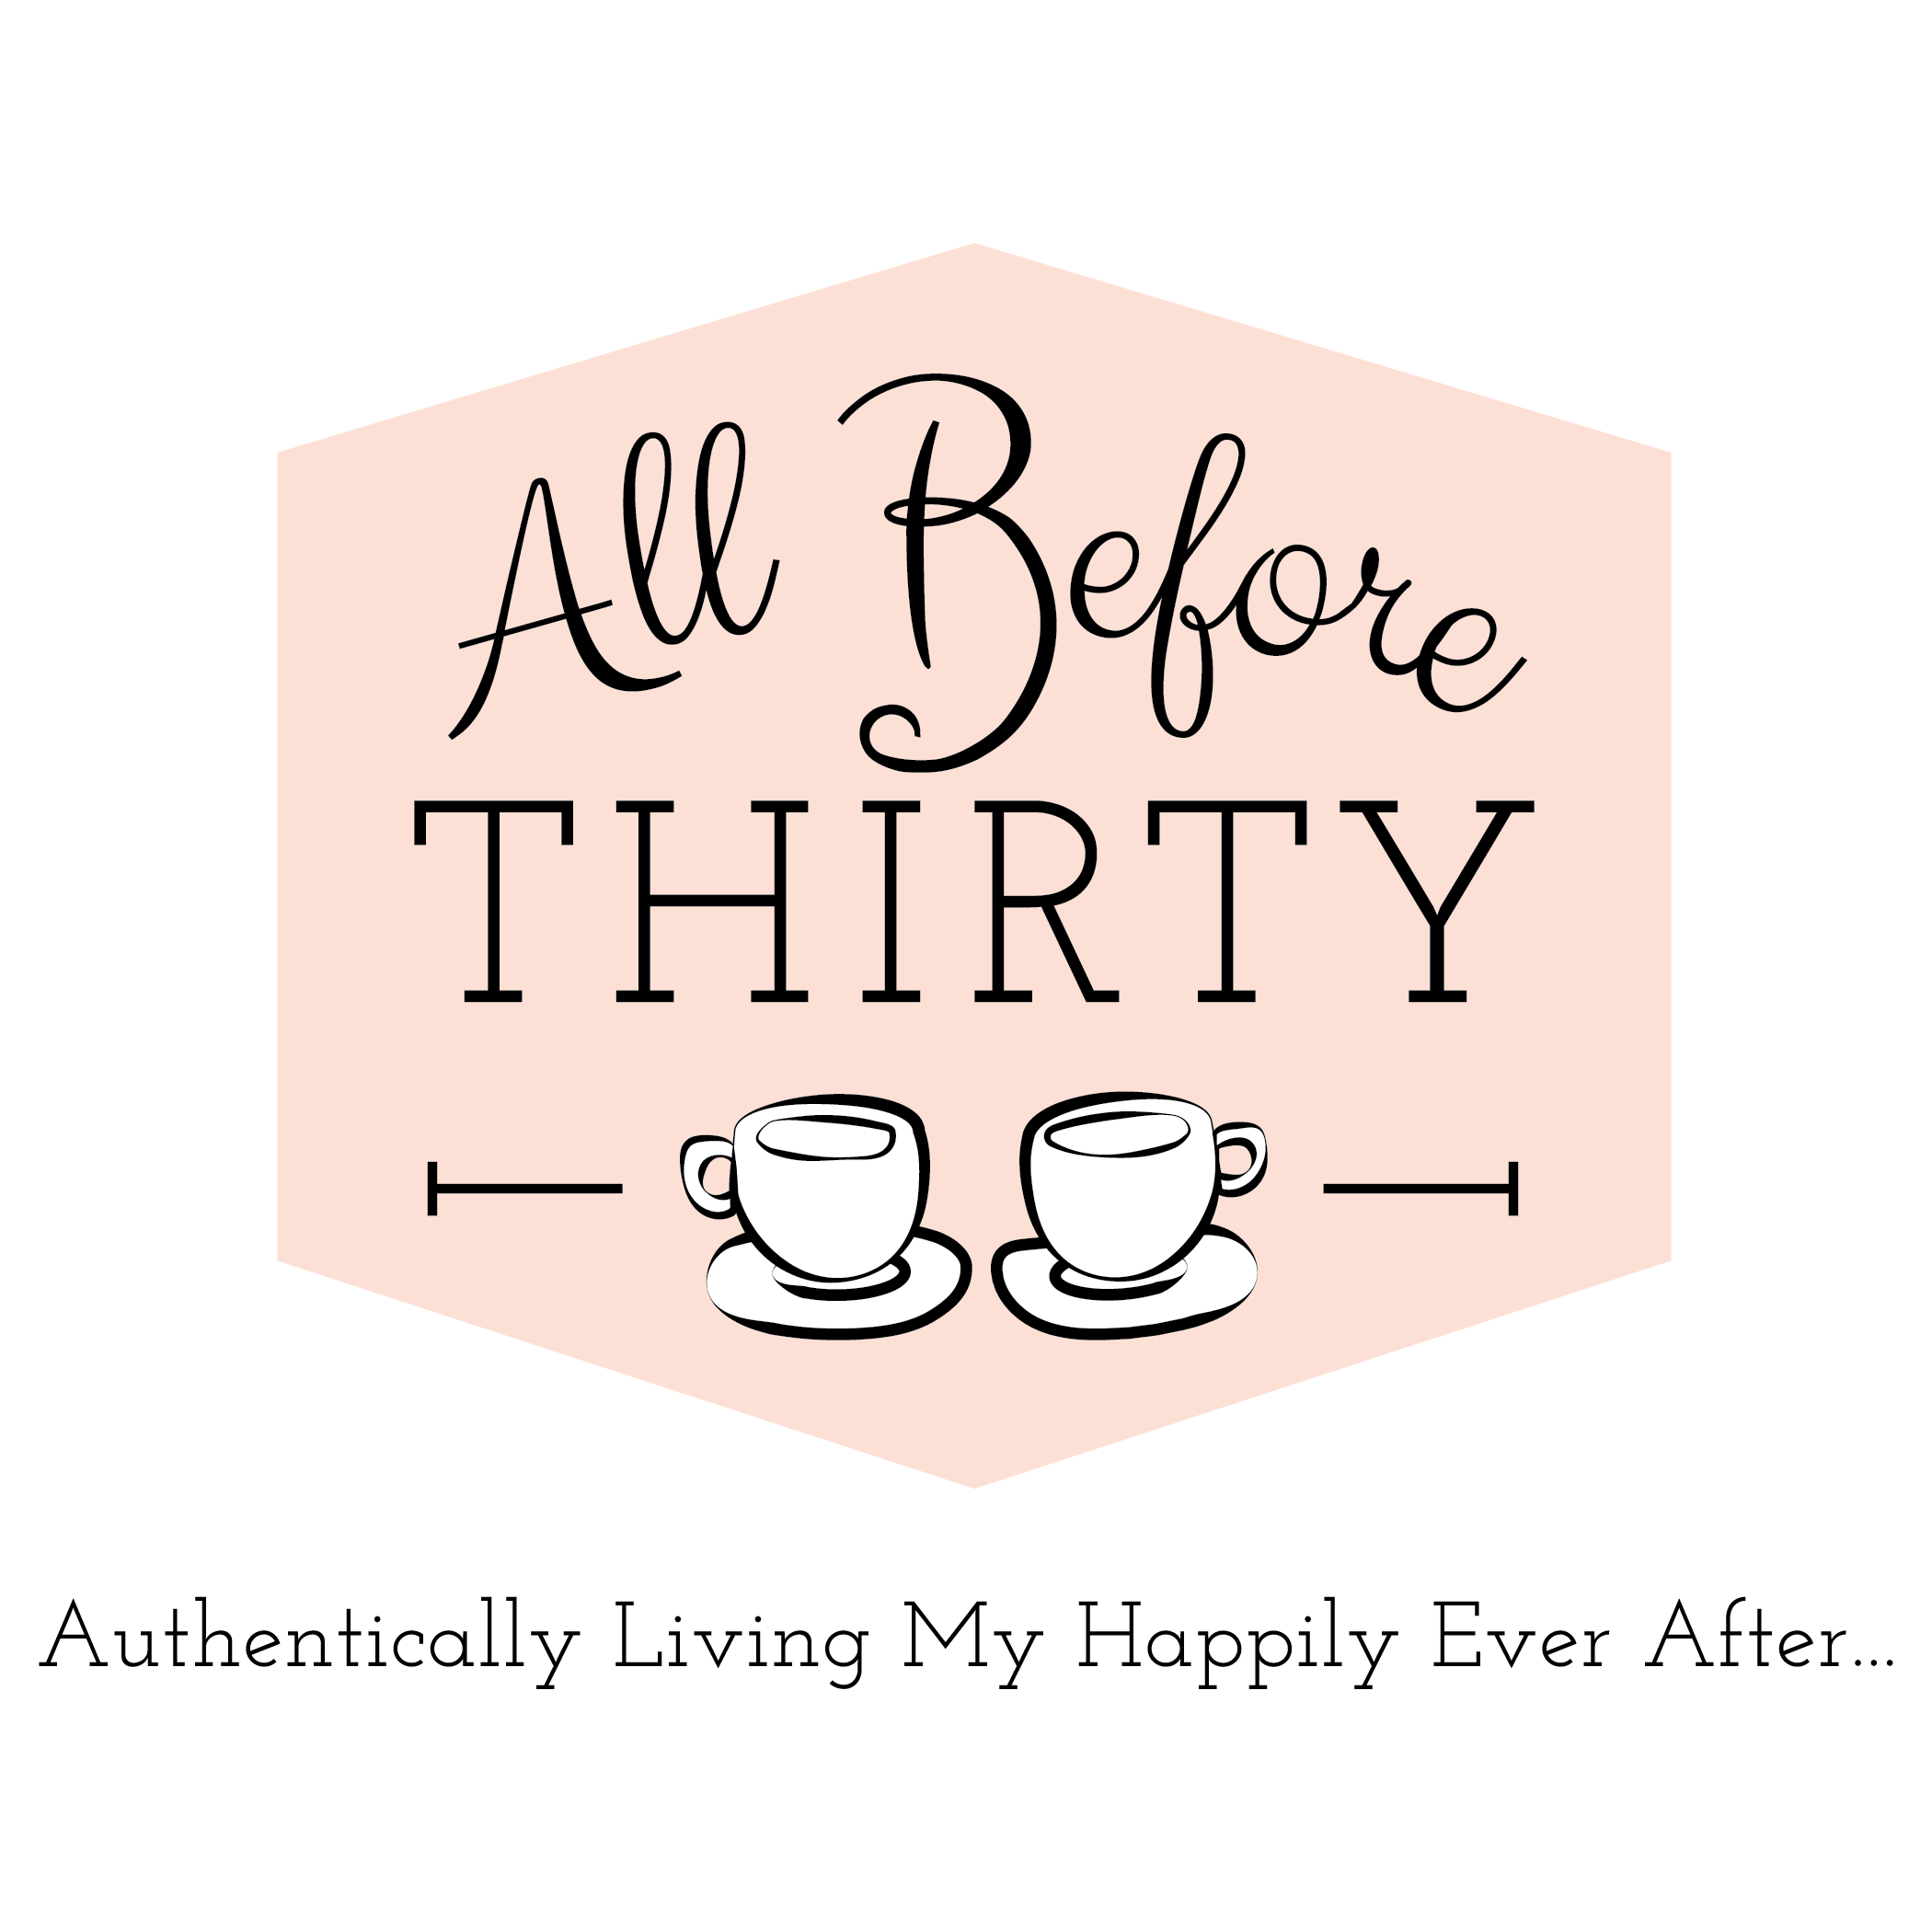 All Before Thirty blog logo